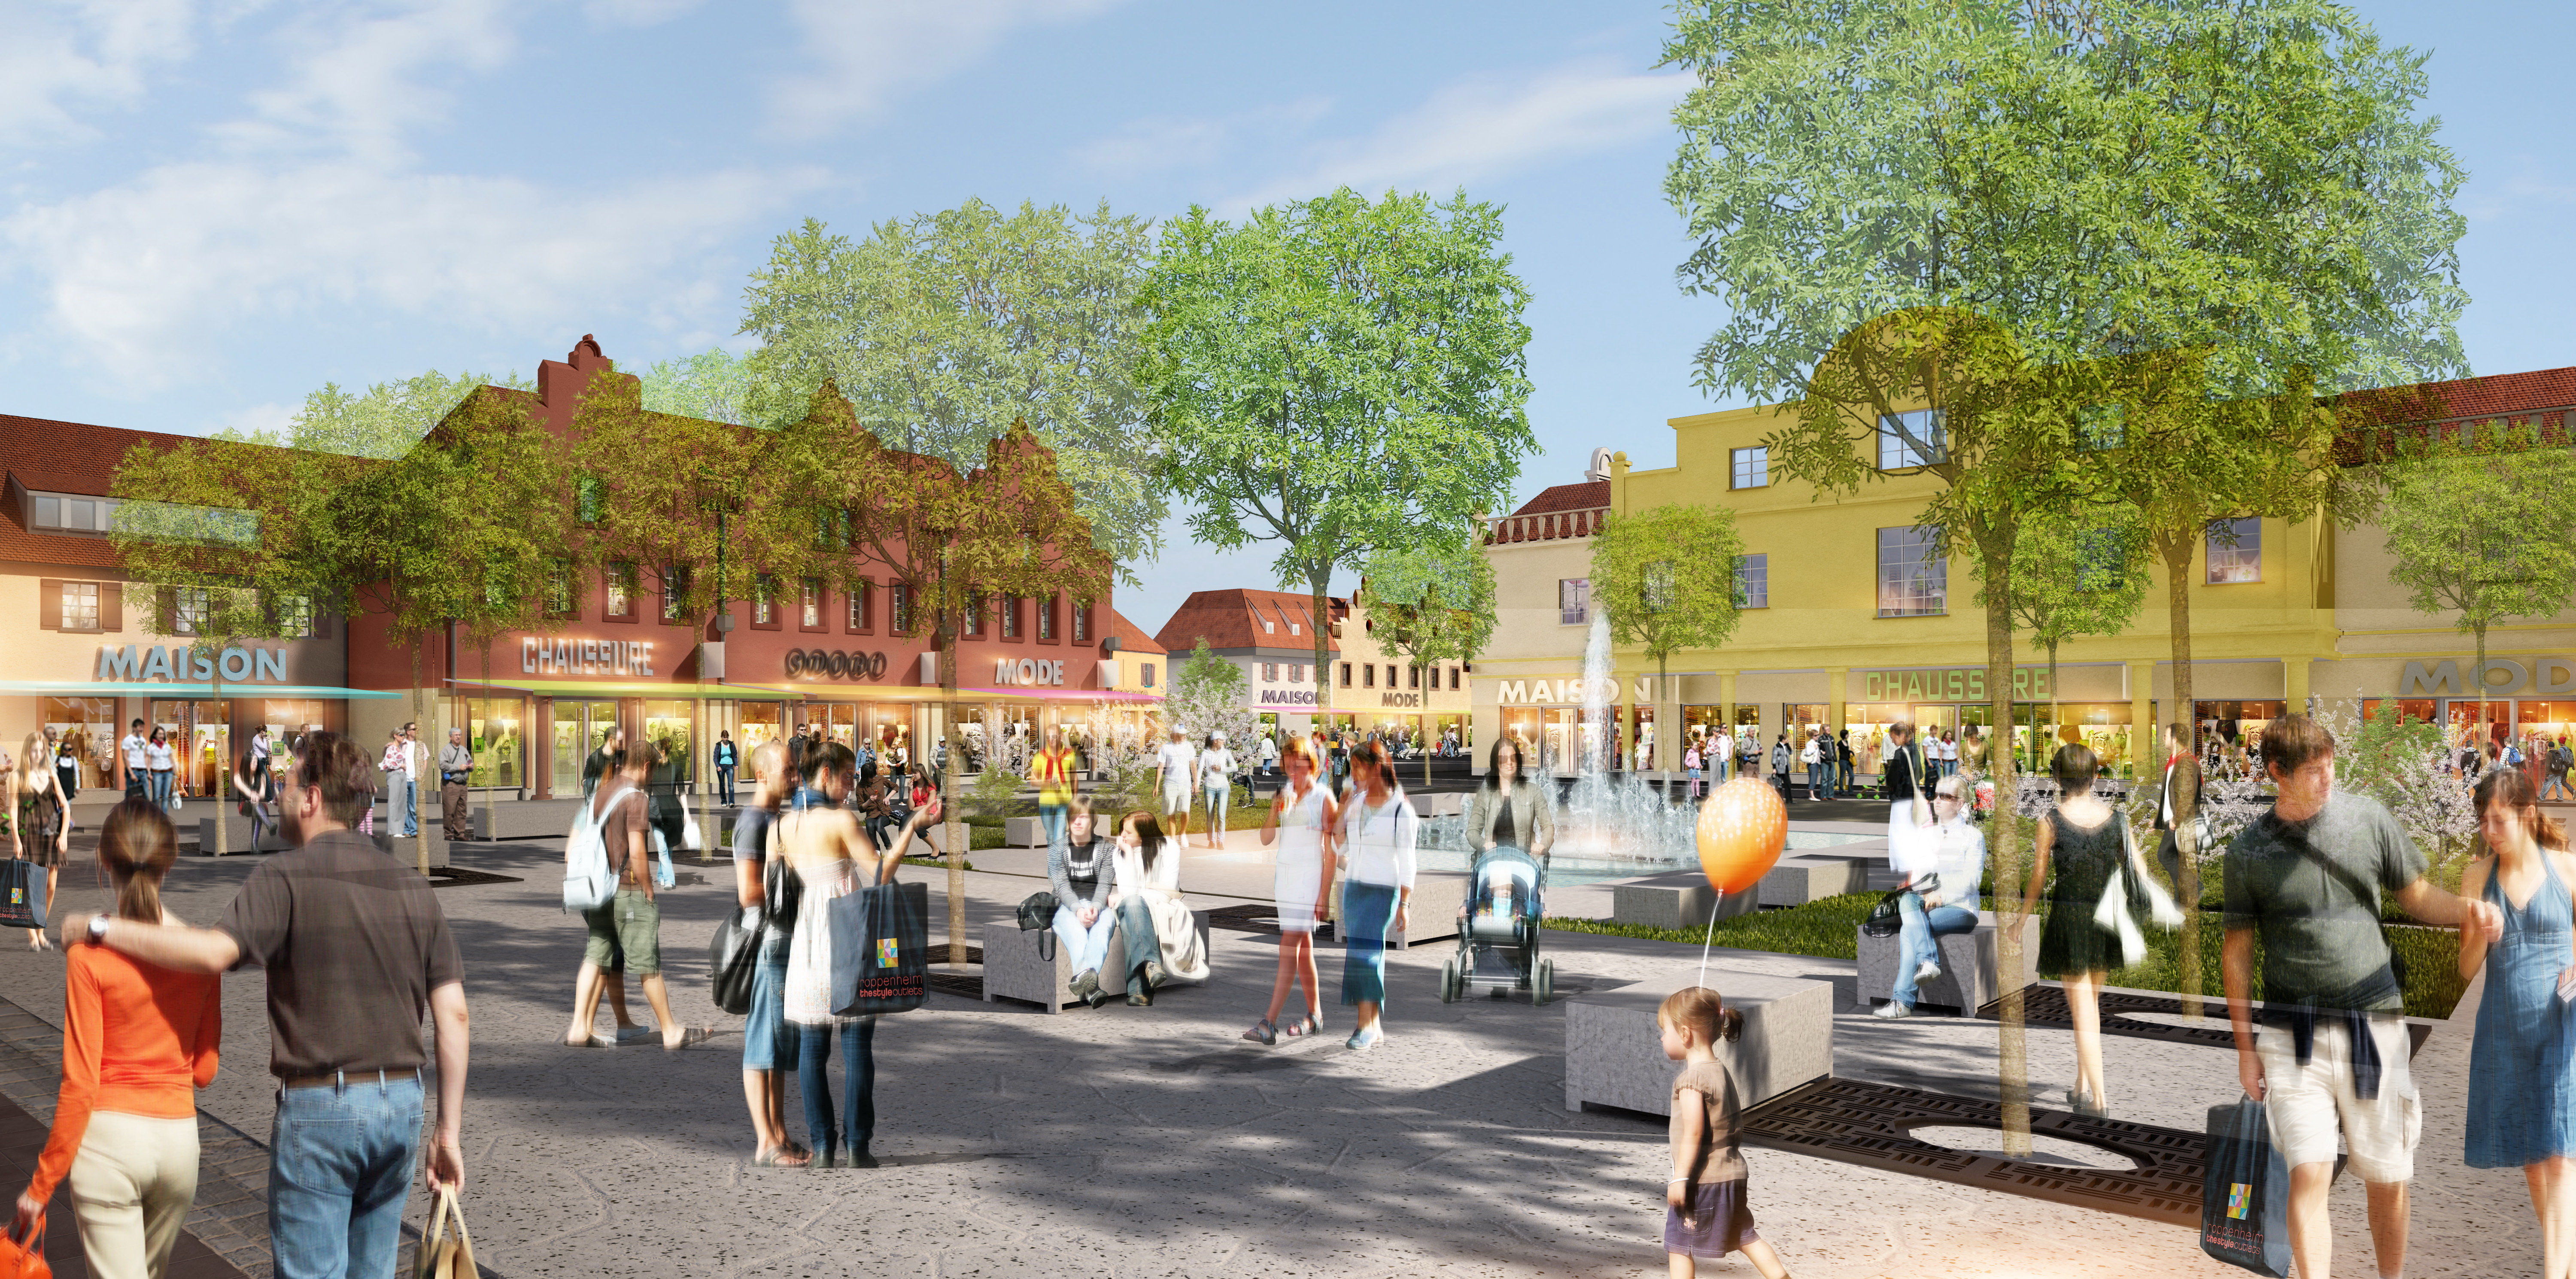 Roppenheim The Style Outlets: Grand opening set for 2012